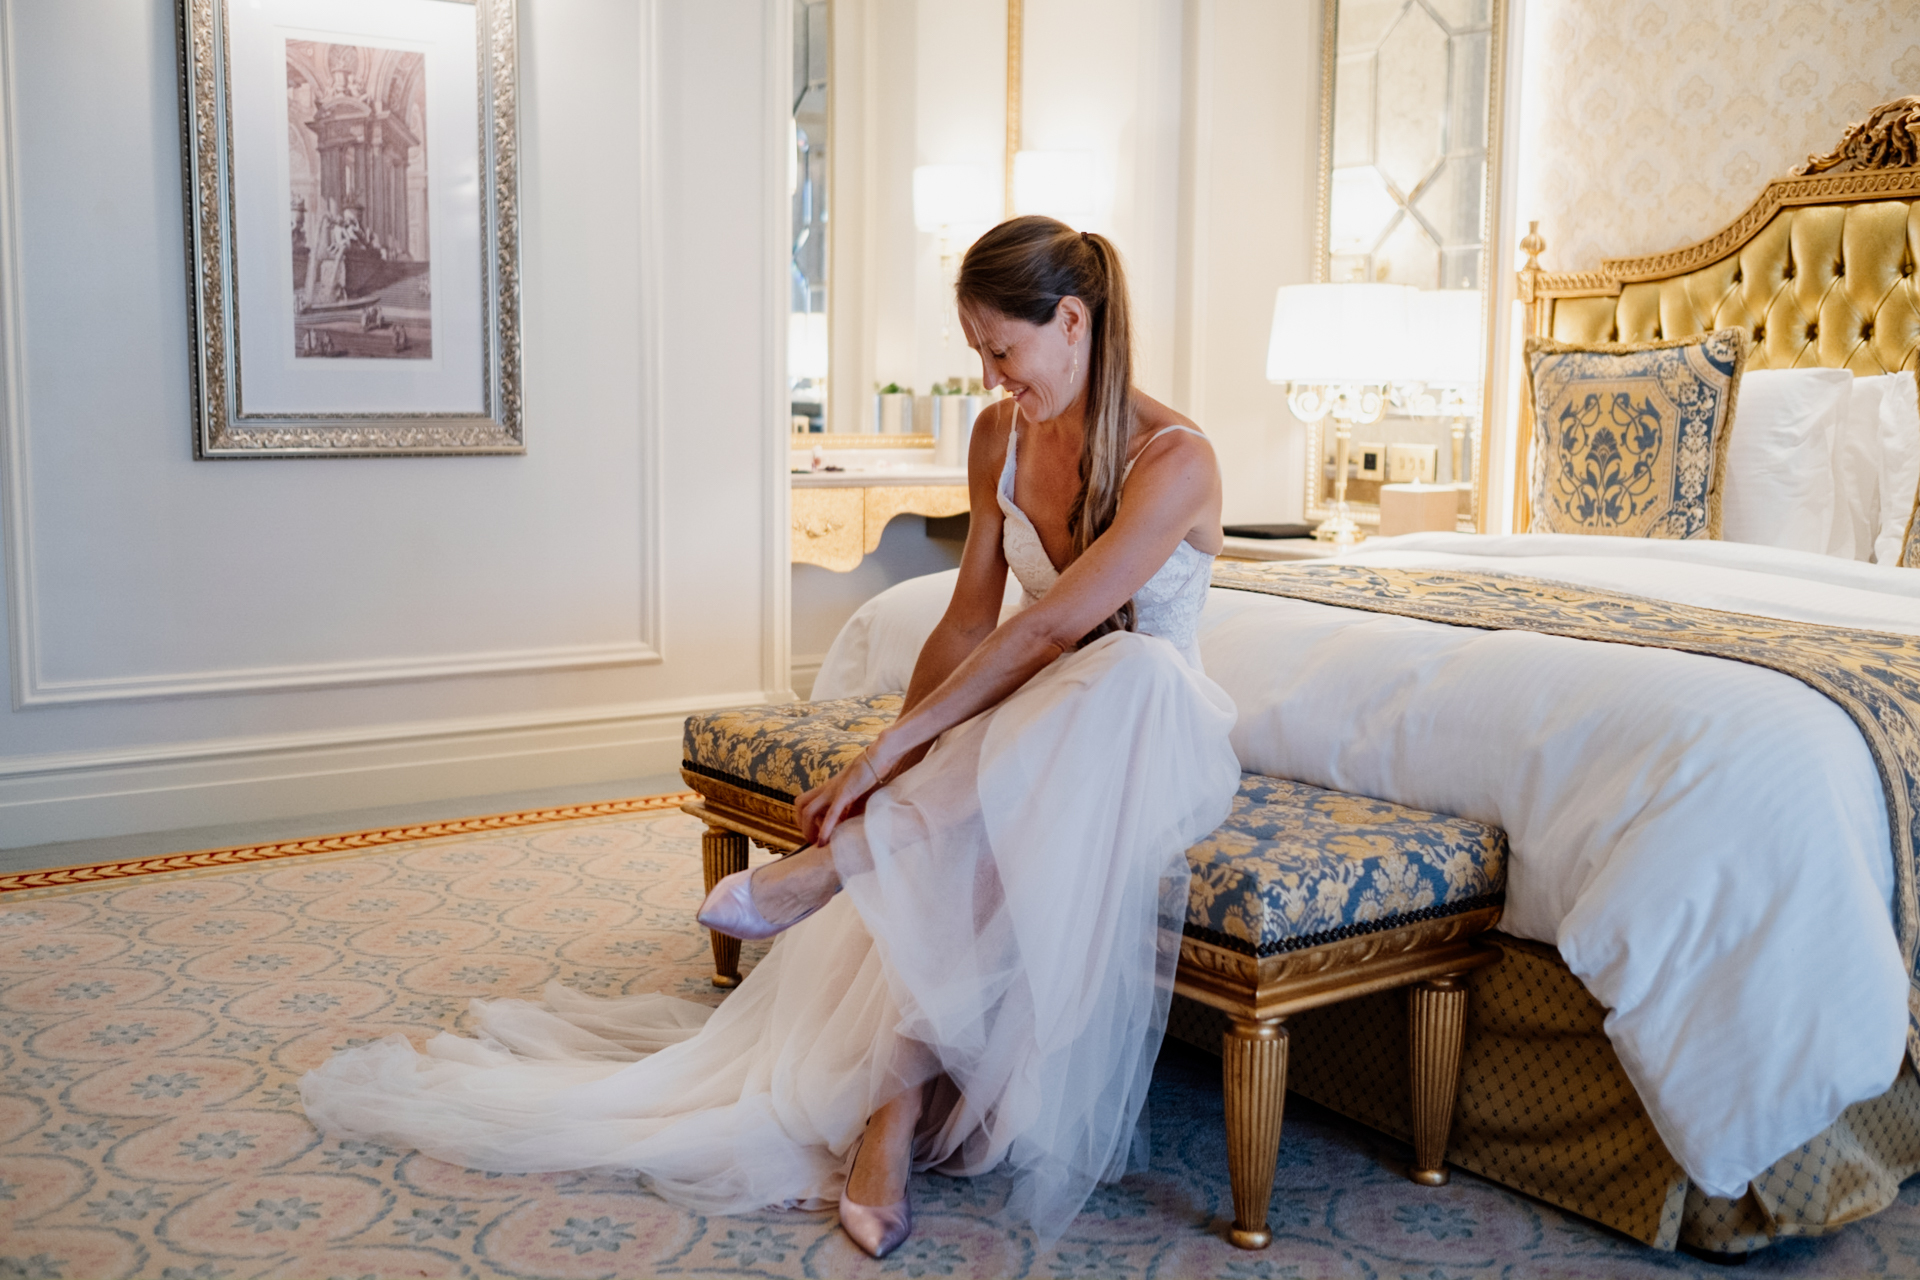 Dubai Elopement Picture of the Bride at Kempinski Hotel | having a quiet moment before leaving her room